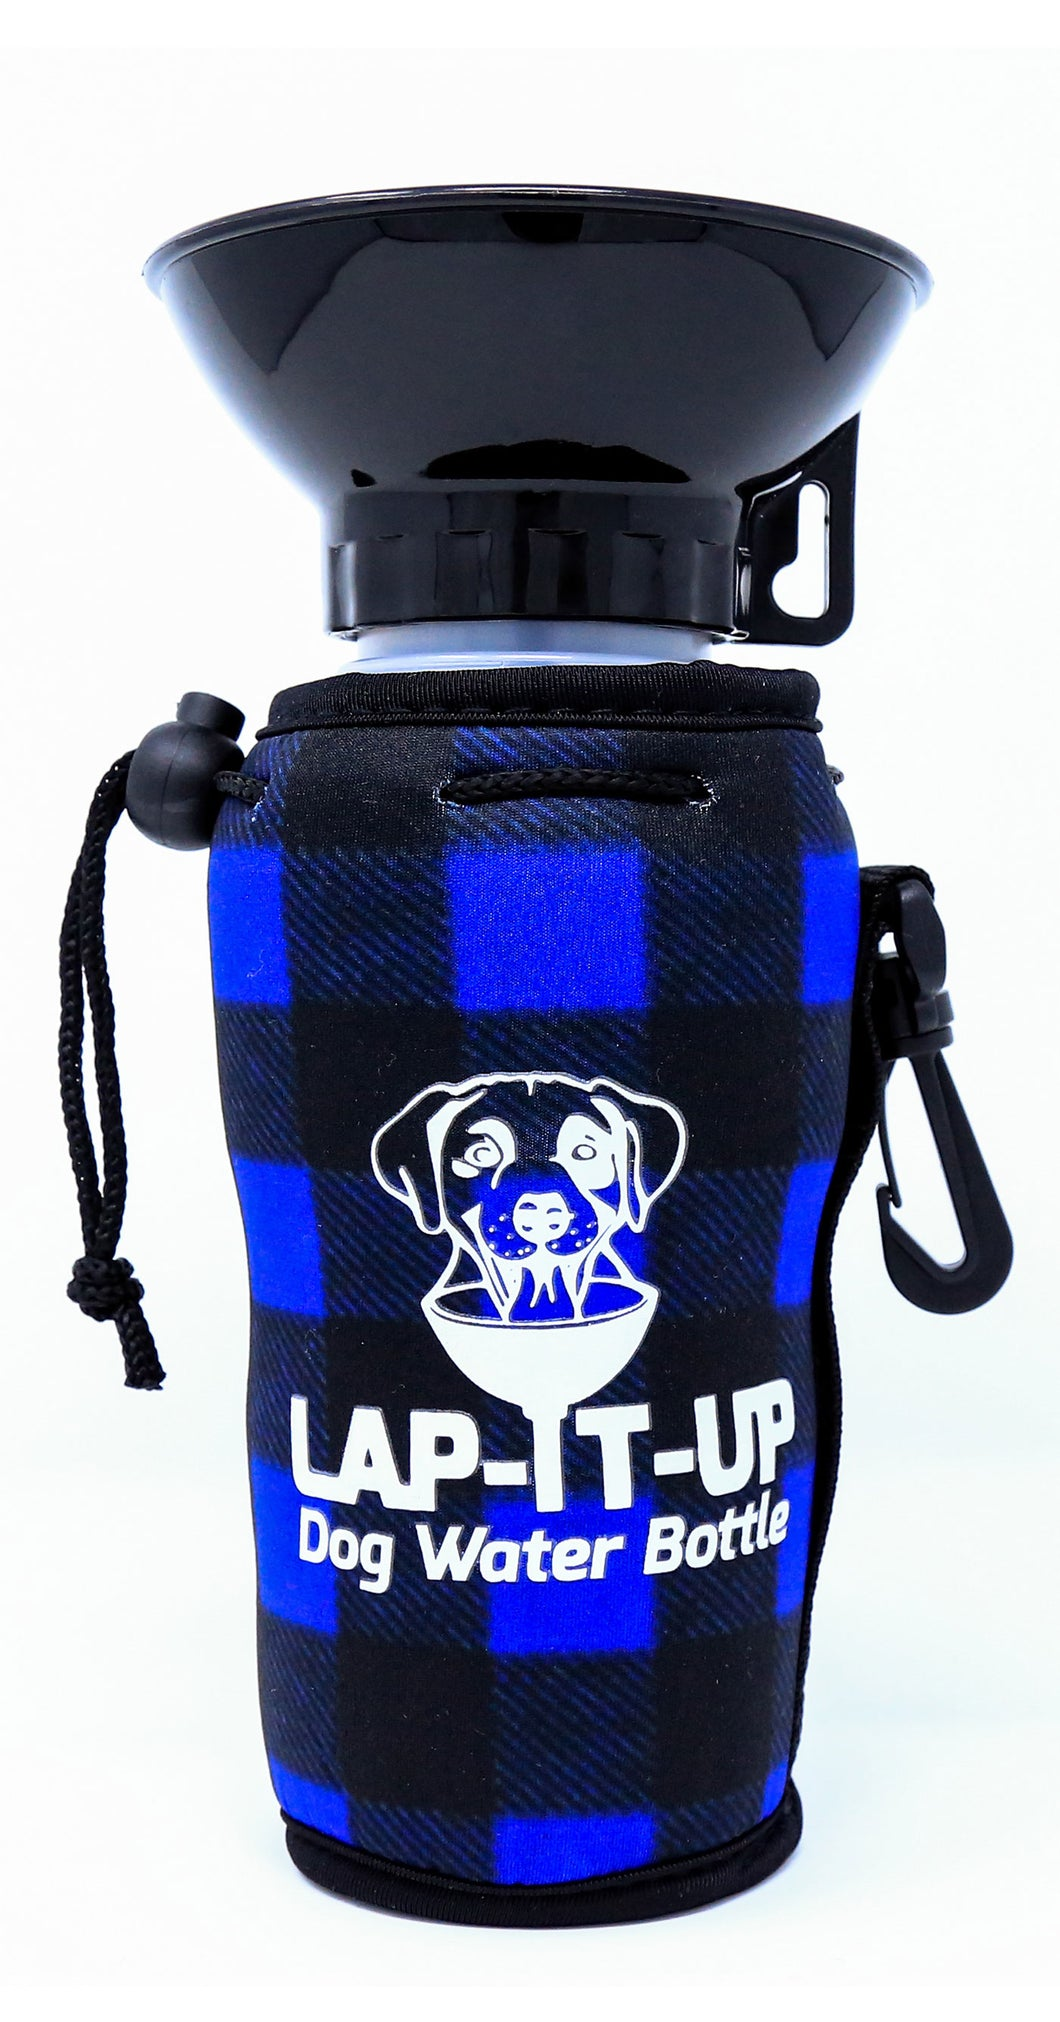 Lap-It-Up Dog Water Bottle - Plaid - Blue & Black